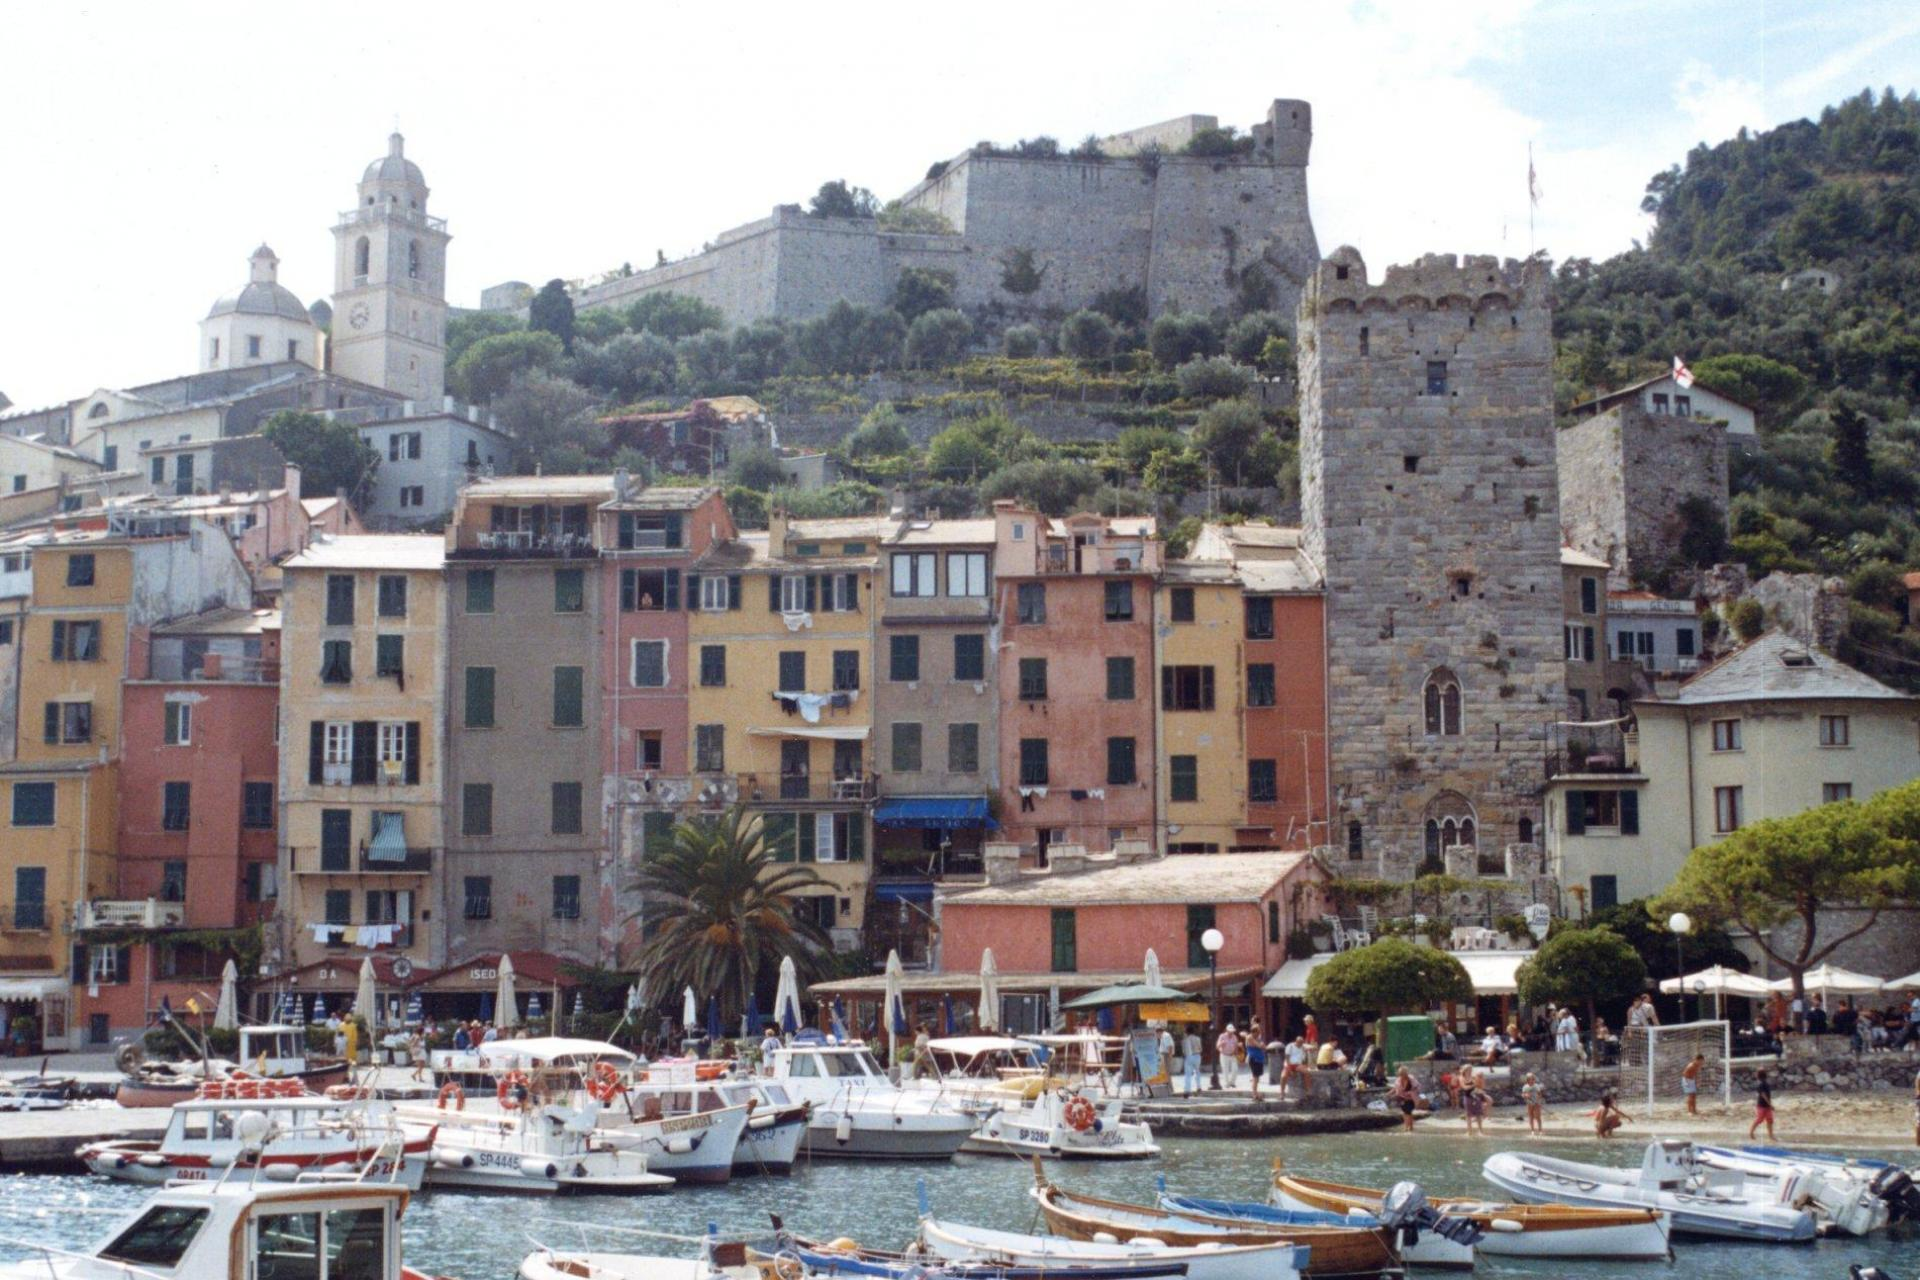 Lovely view of Portovenere marina!